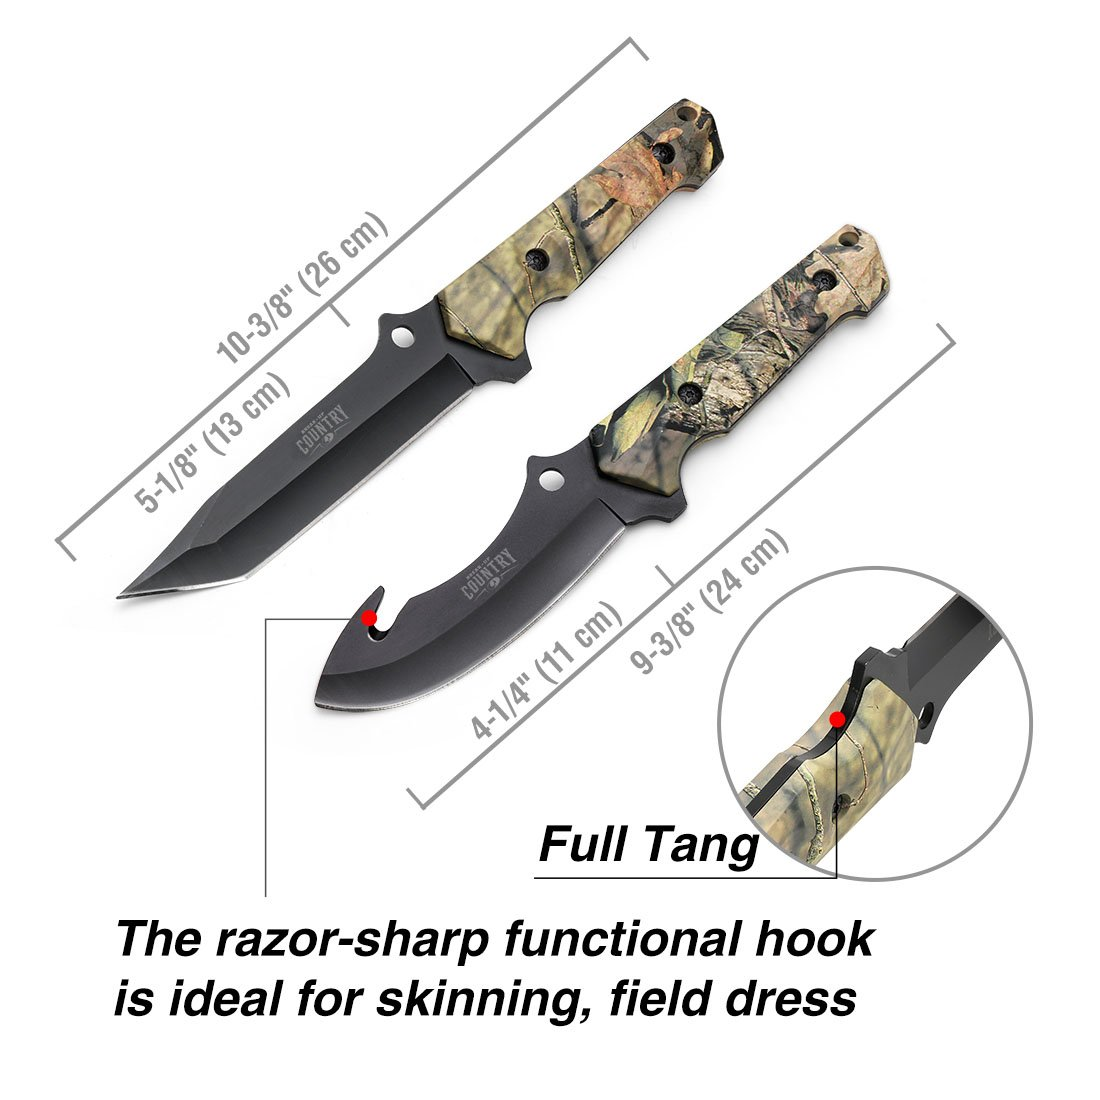 MOSSY OAK Fixed Blade Hunting Knife Set - 2 Piece, Full Tang Handle Straight Edge and Gut Hook Blades Game Processing Knife, Sheath Included by Mossy Oak (Image #1)